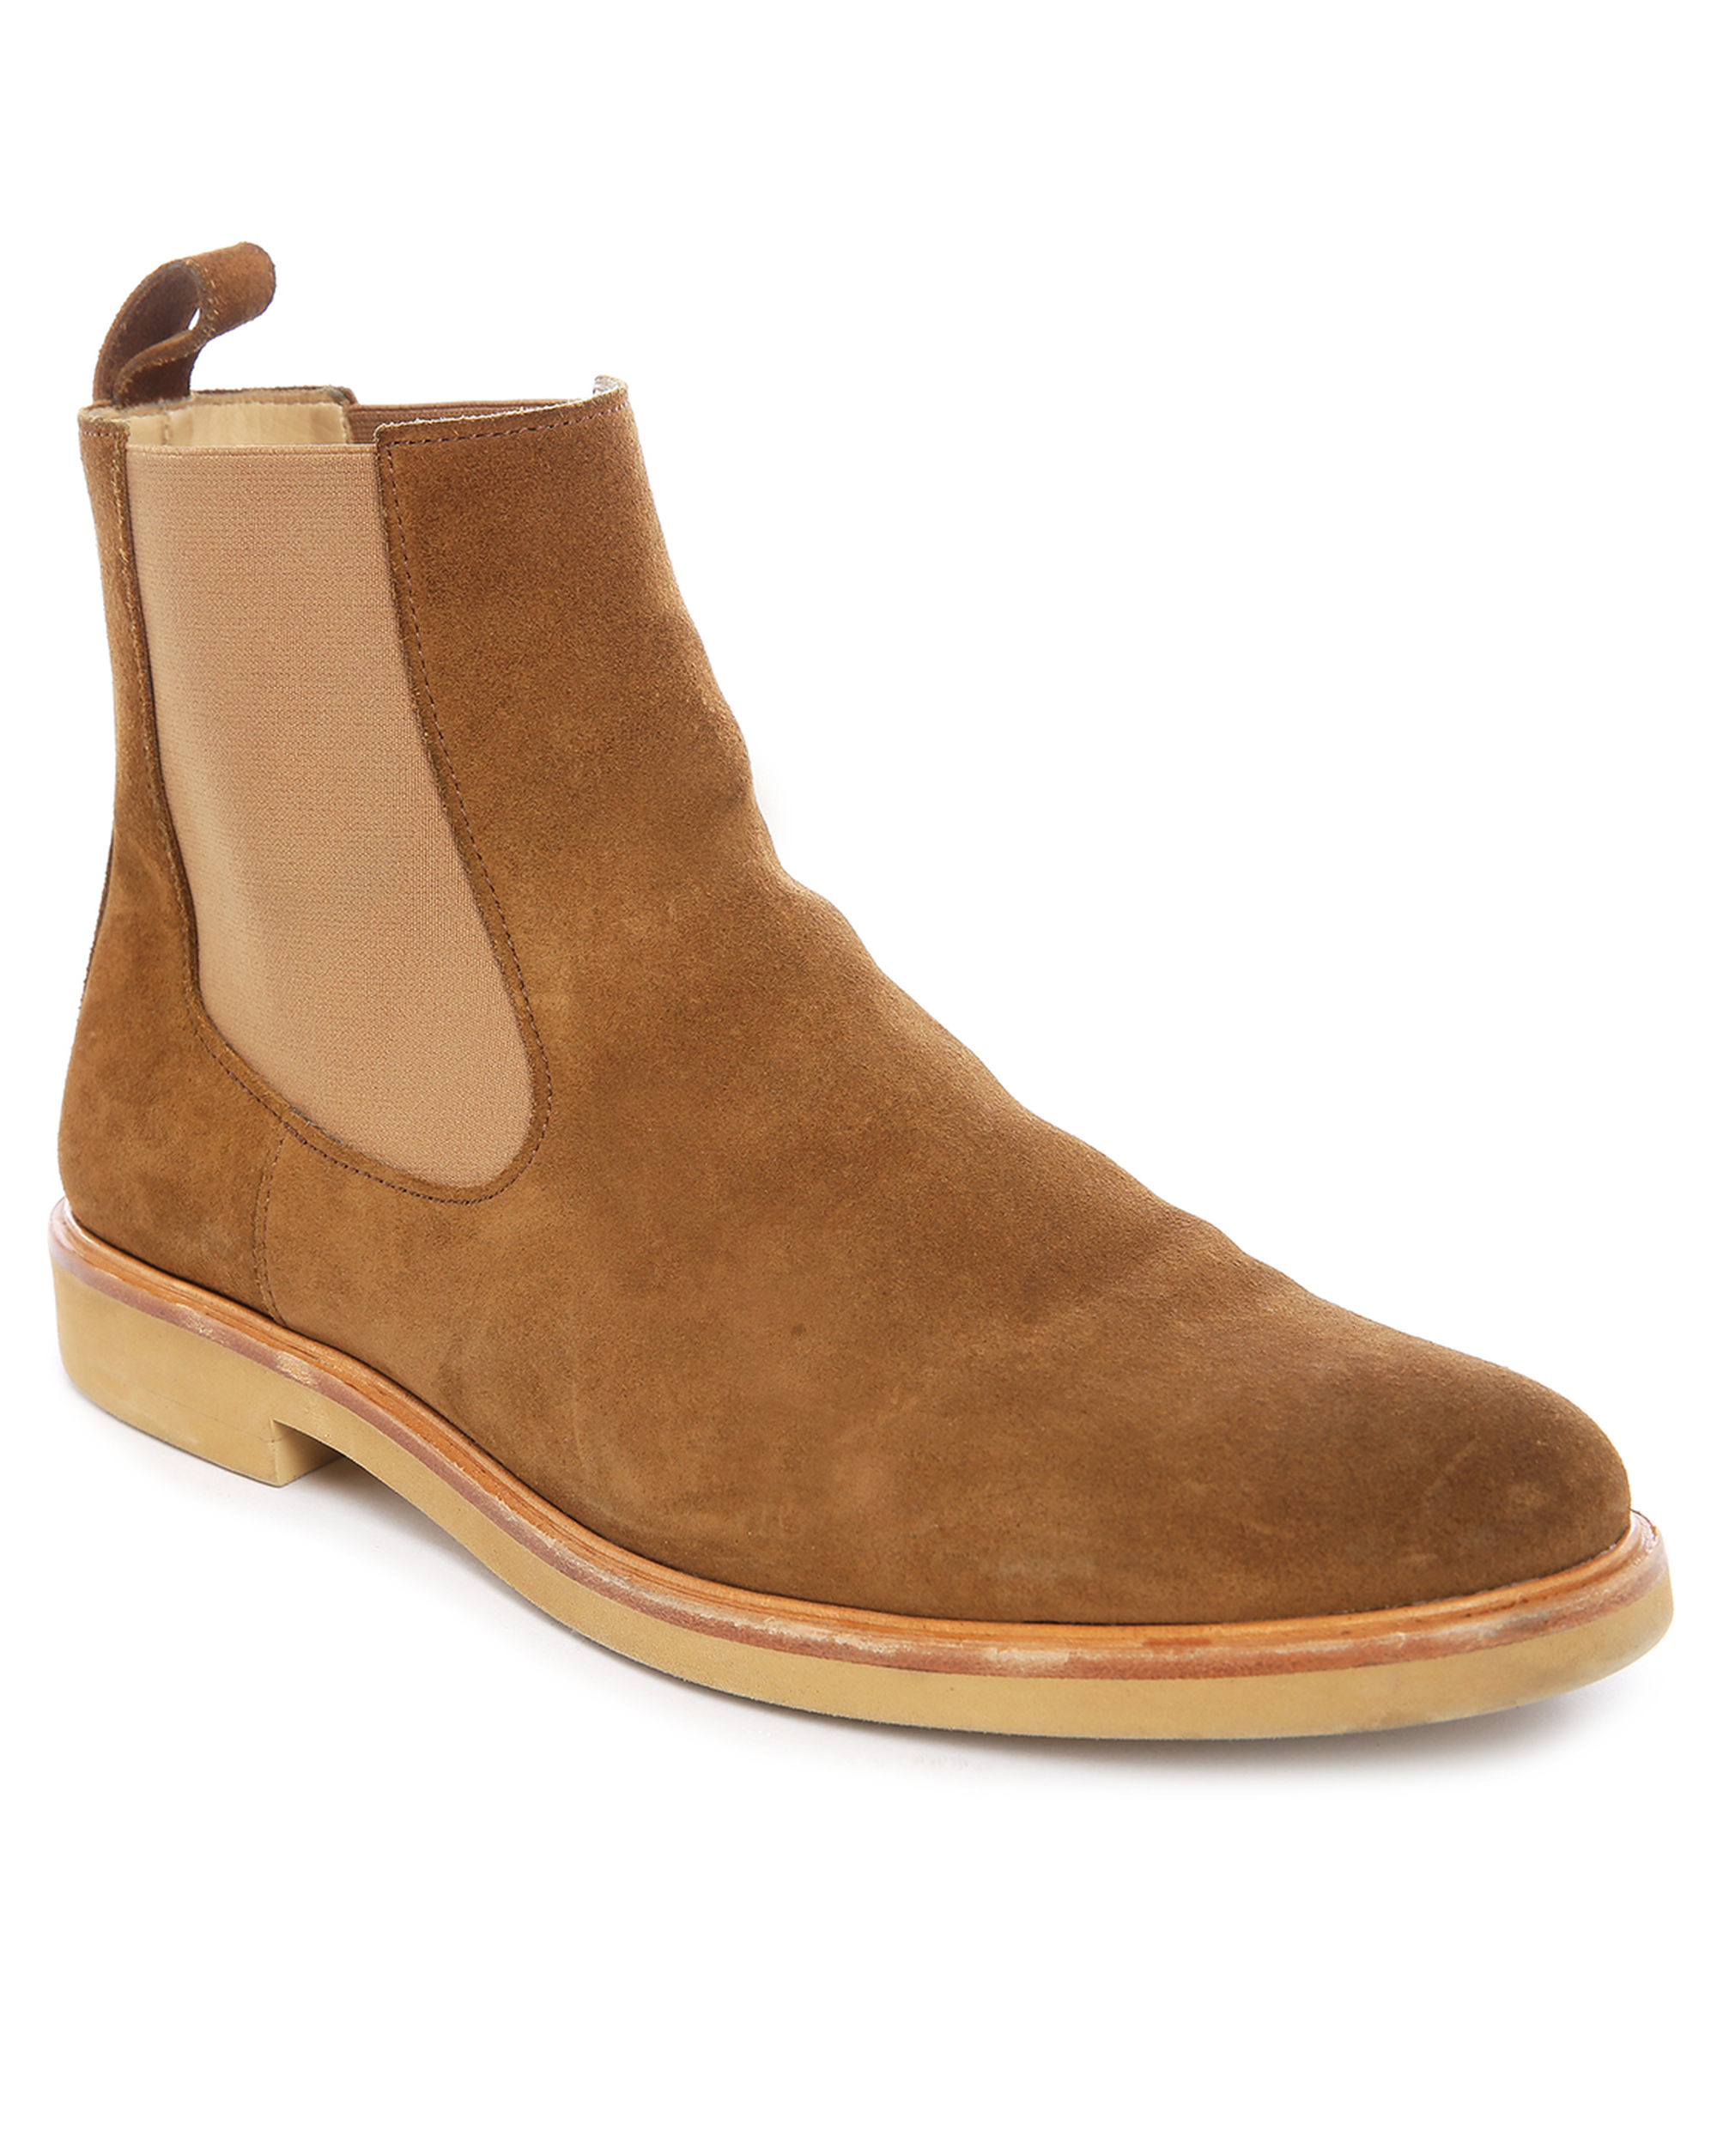 A P C Suede Chelsea Boots In Brown For Men Lyst